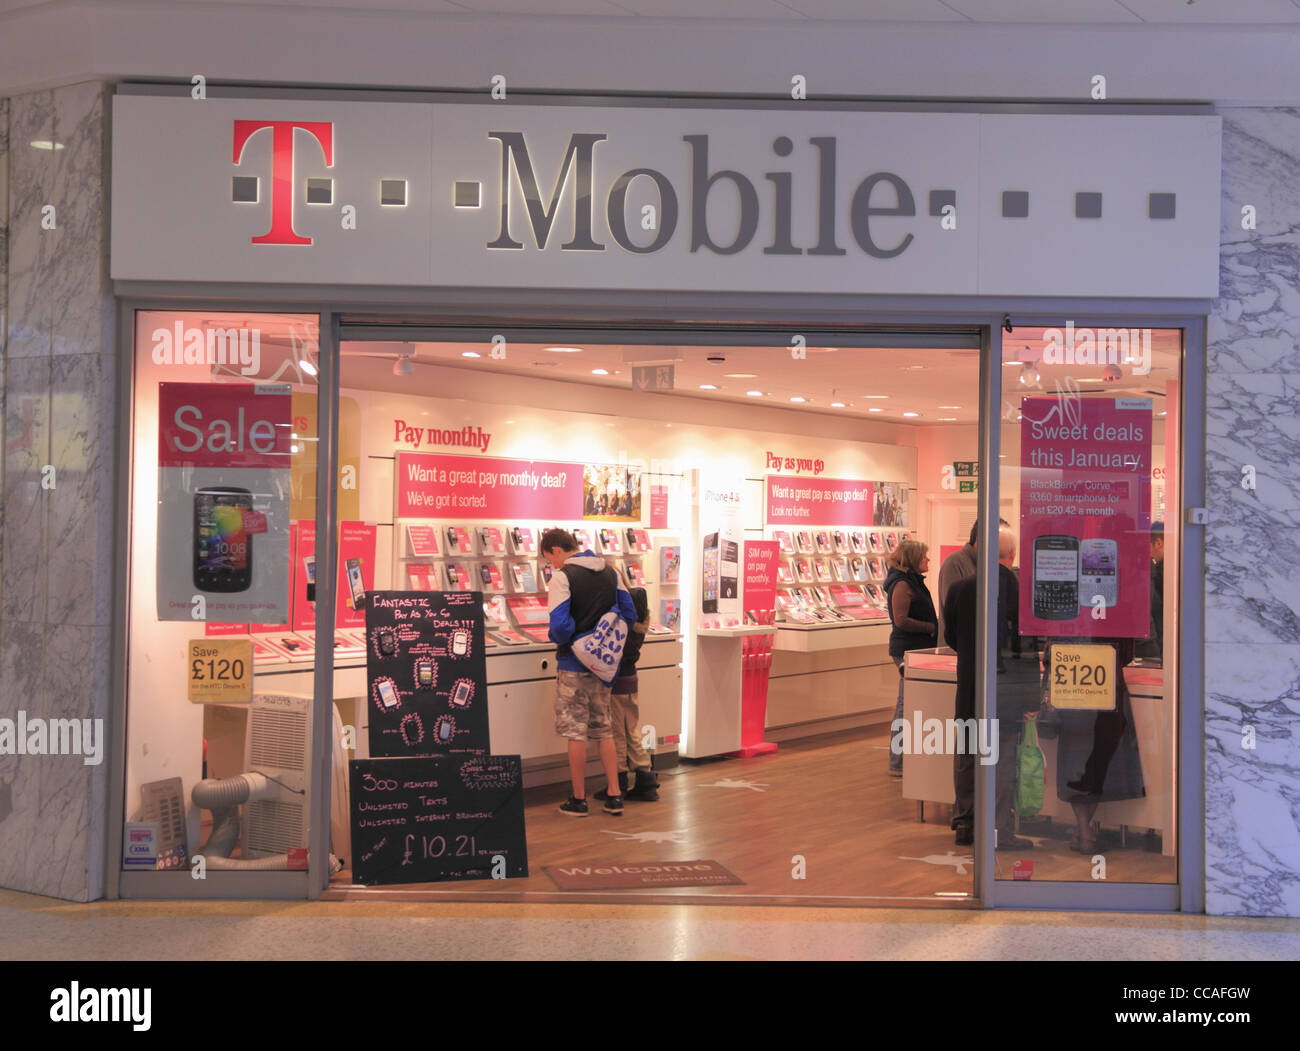 a t mobile mobile cell telephone phone shop store retail